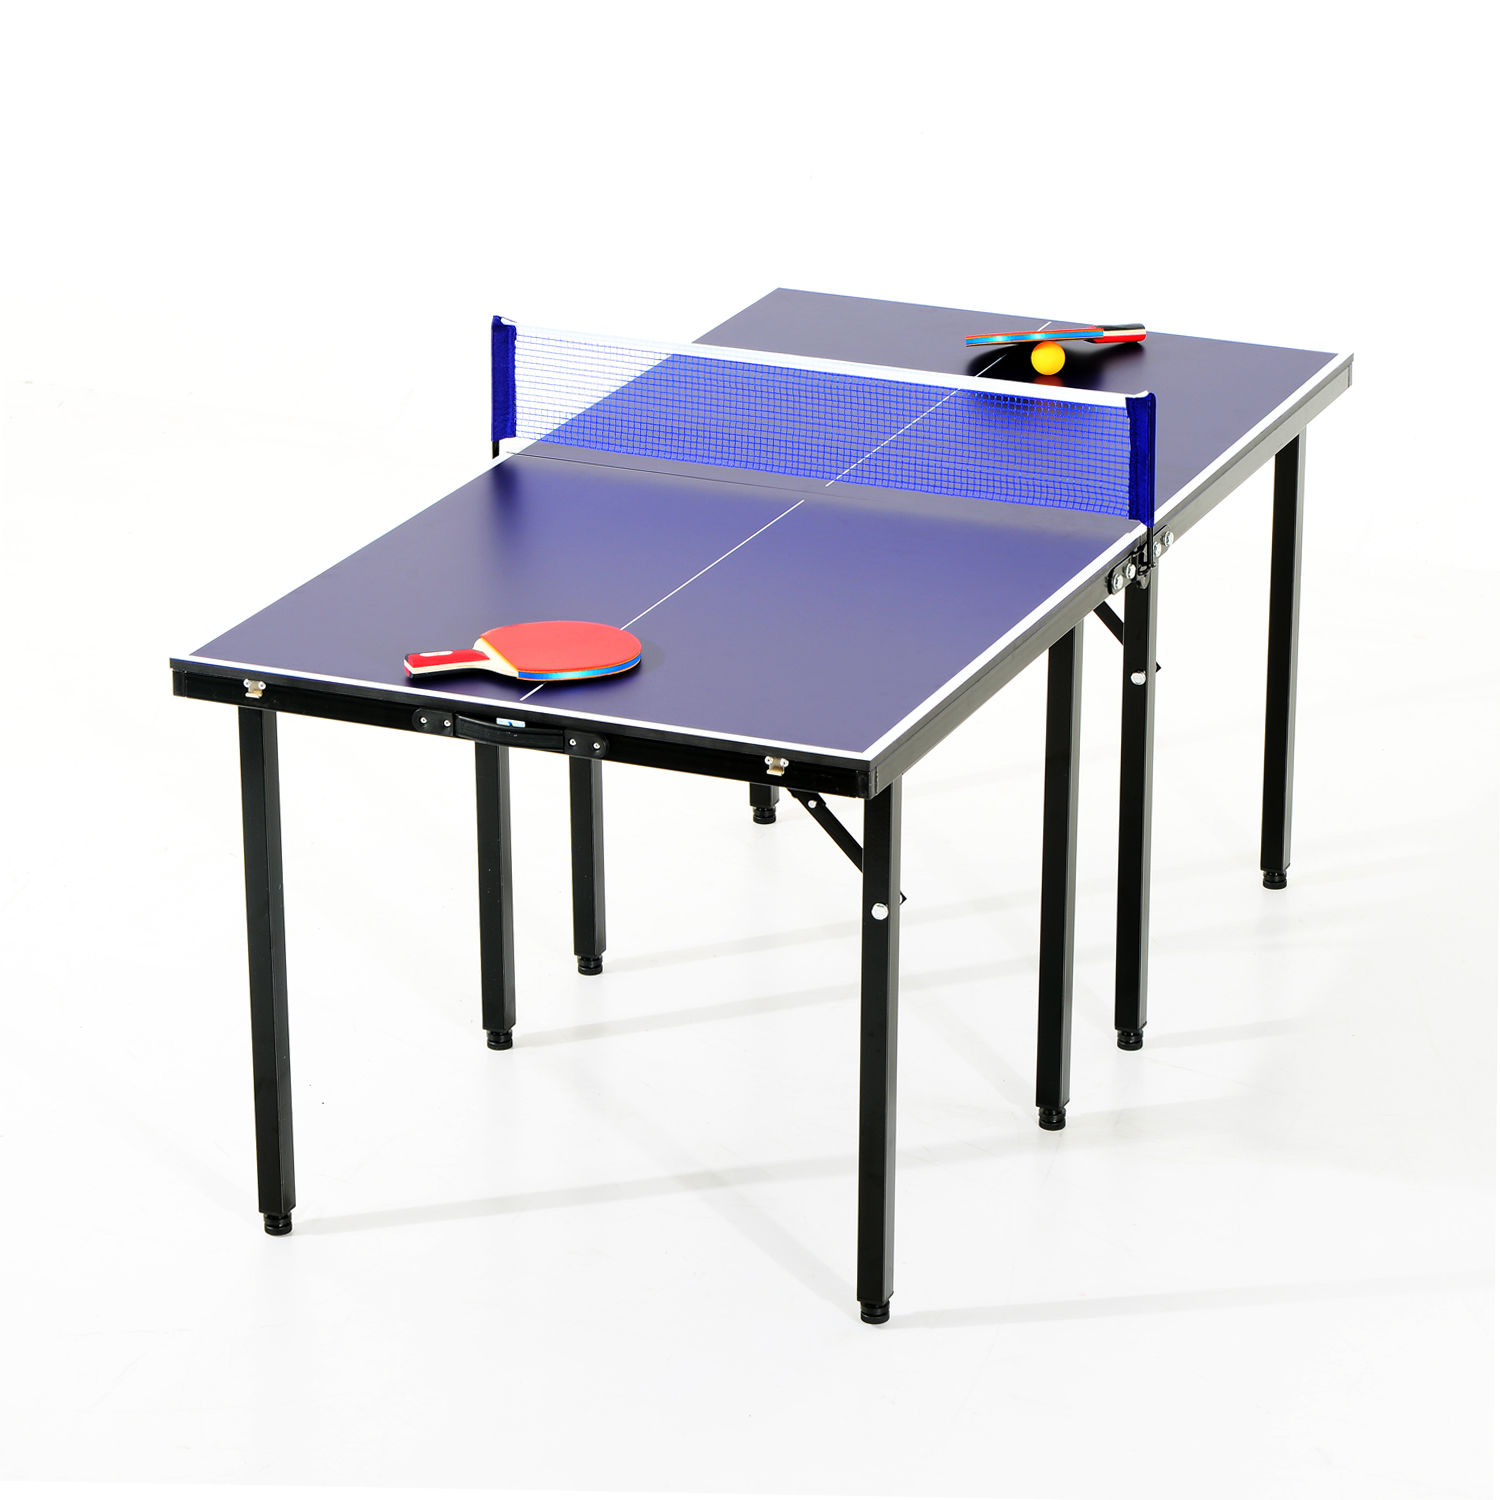 Portable Folding Ping Pong Table Set Tennis Table Indoor Game w/Paddles u0026 Balls  sc 1 st  eBay : ping pong table set - pezcame.com